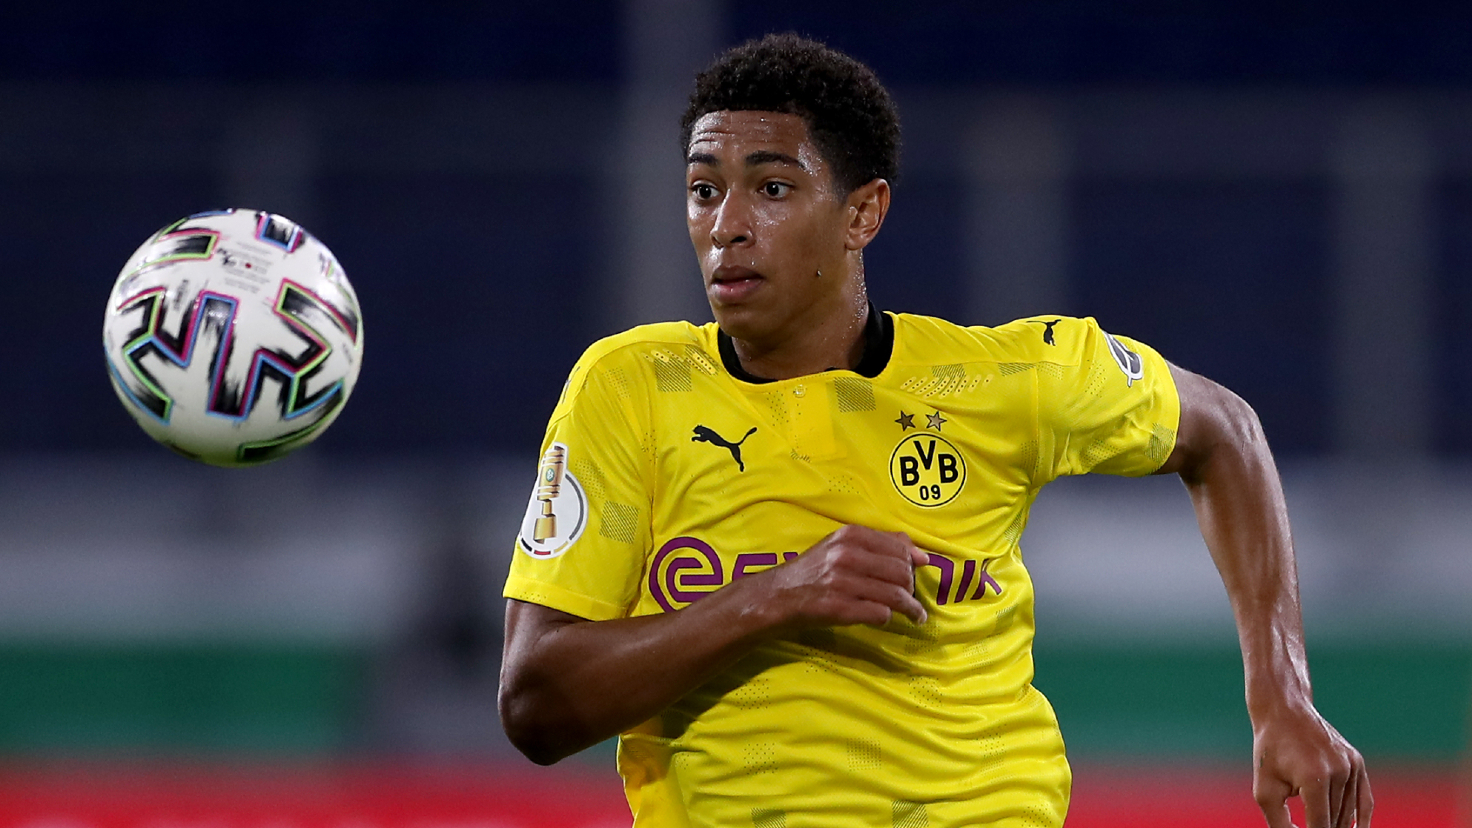 'Bellingham plays like a man' – Hazard impressed by Dortmund prodigy's debut performance